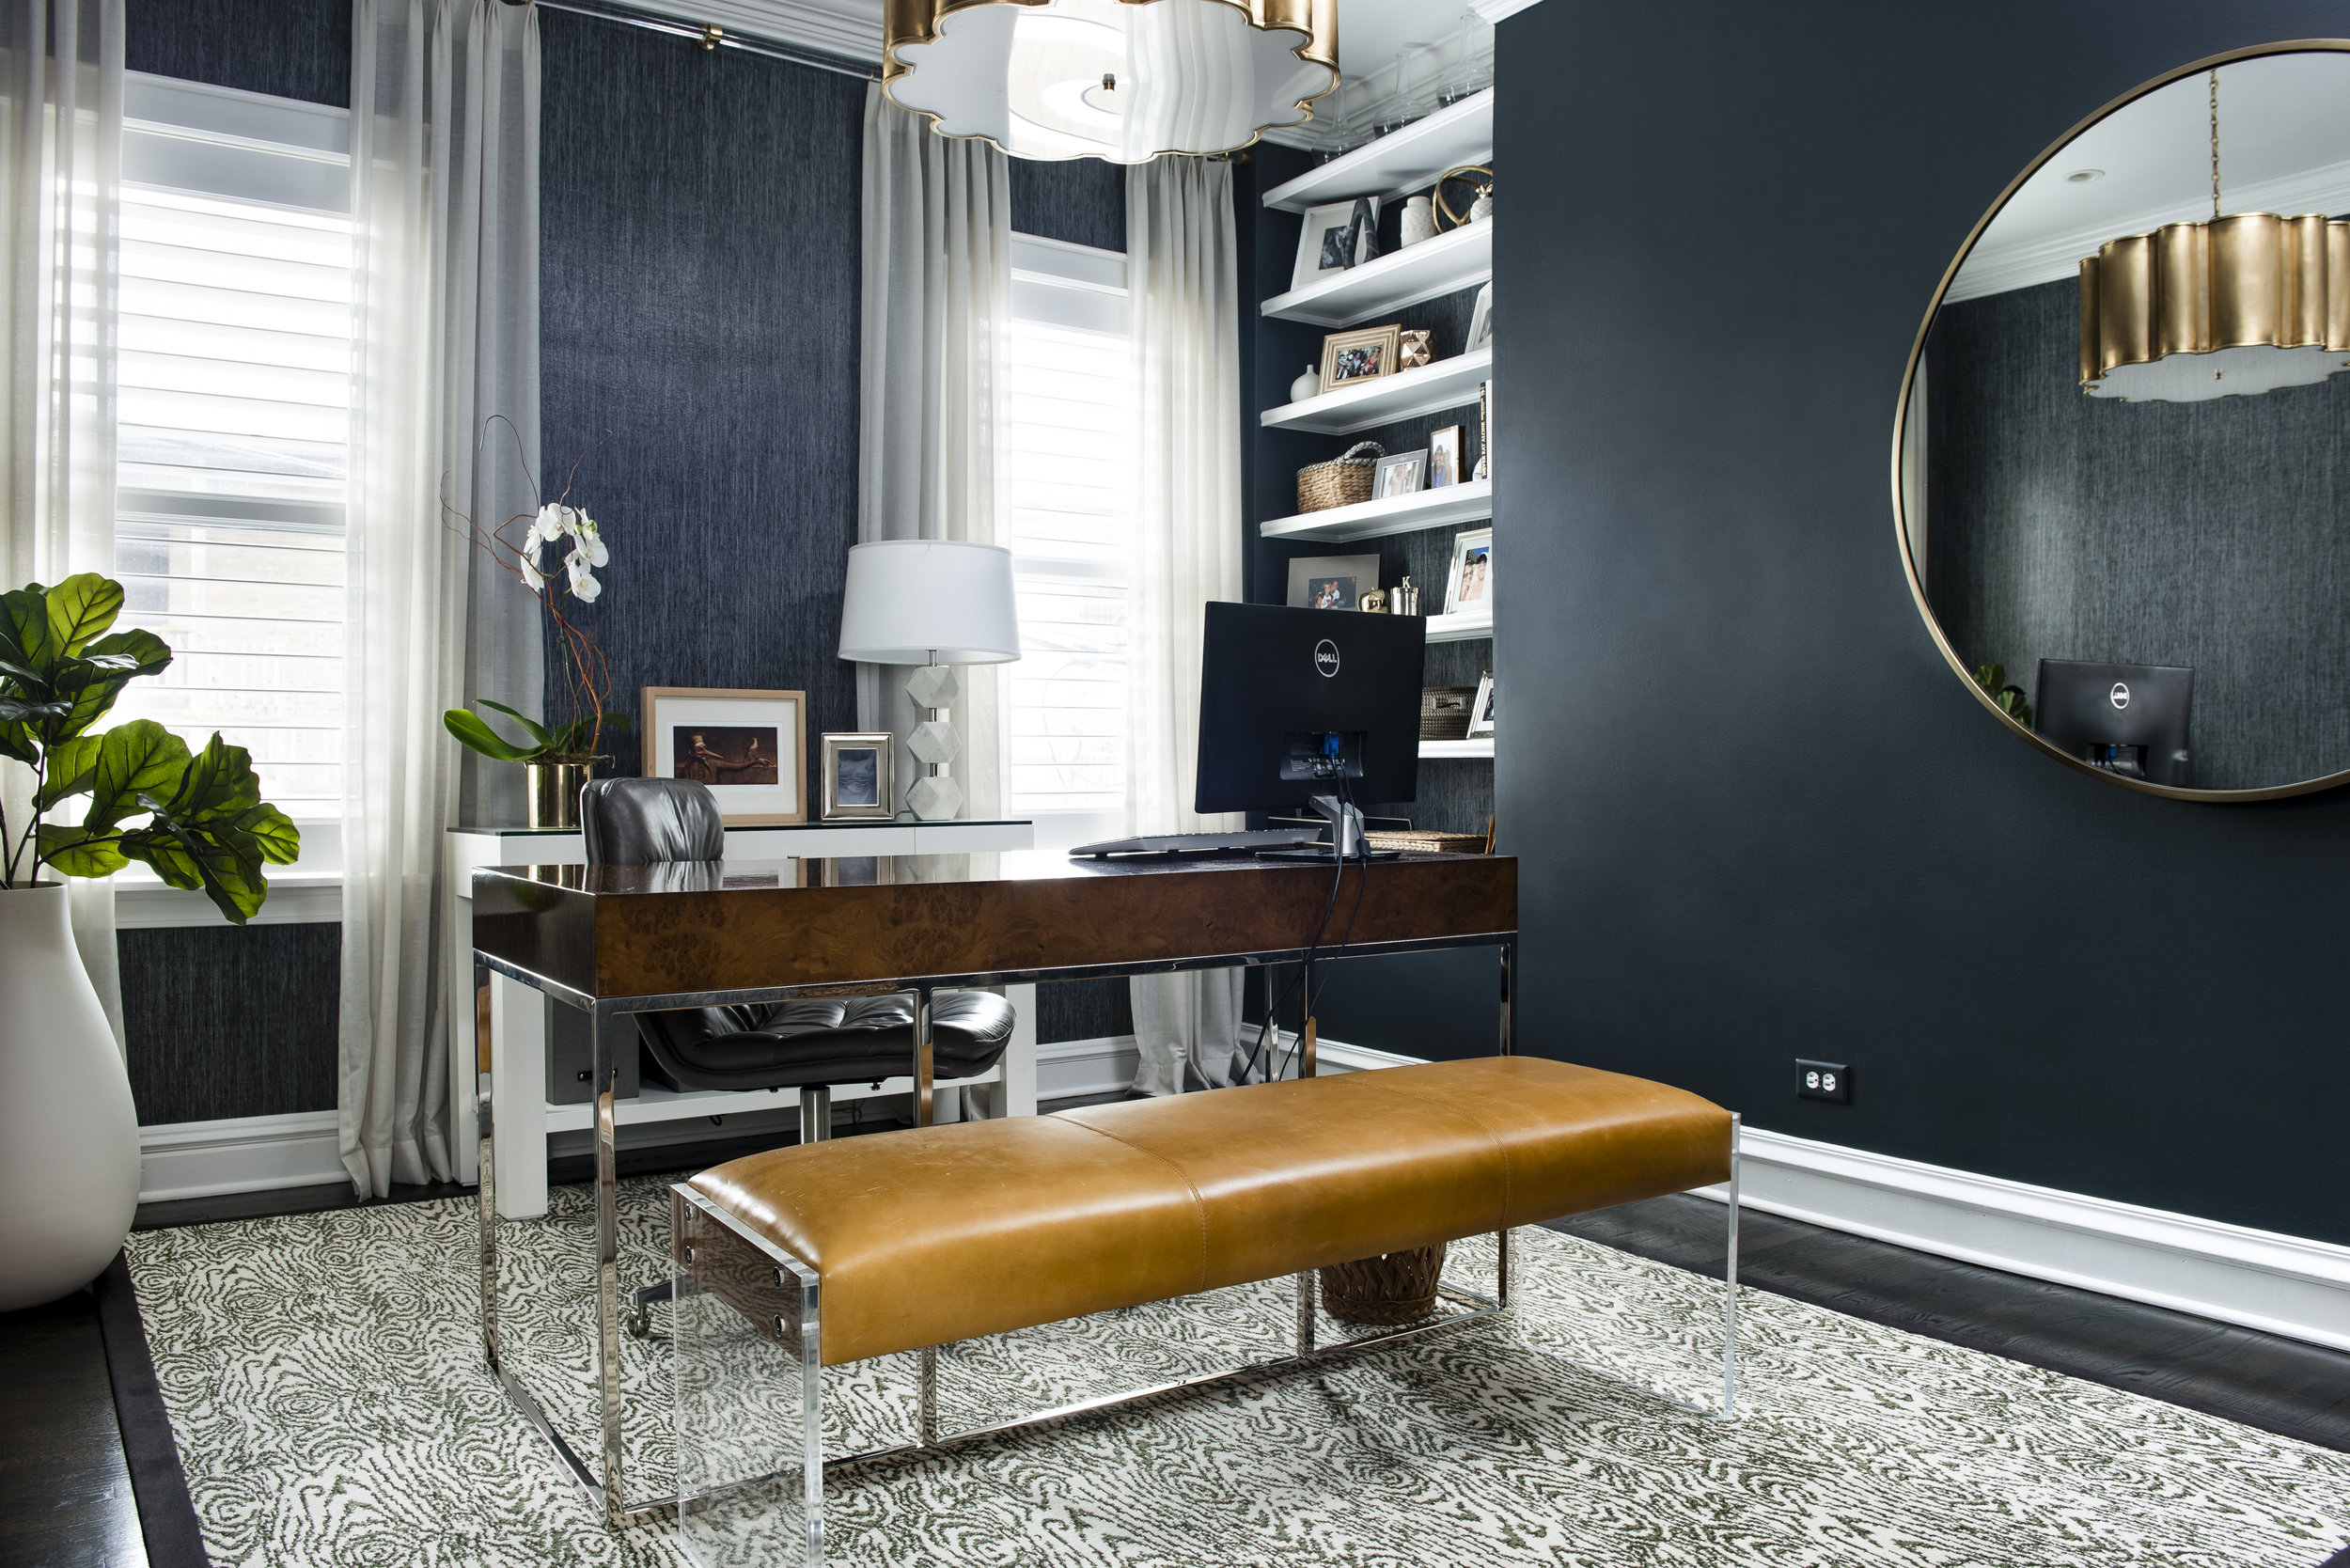 Outline_Interiors_Lakeview_Office_2.jpg